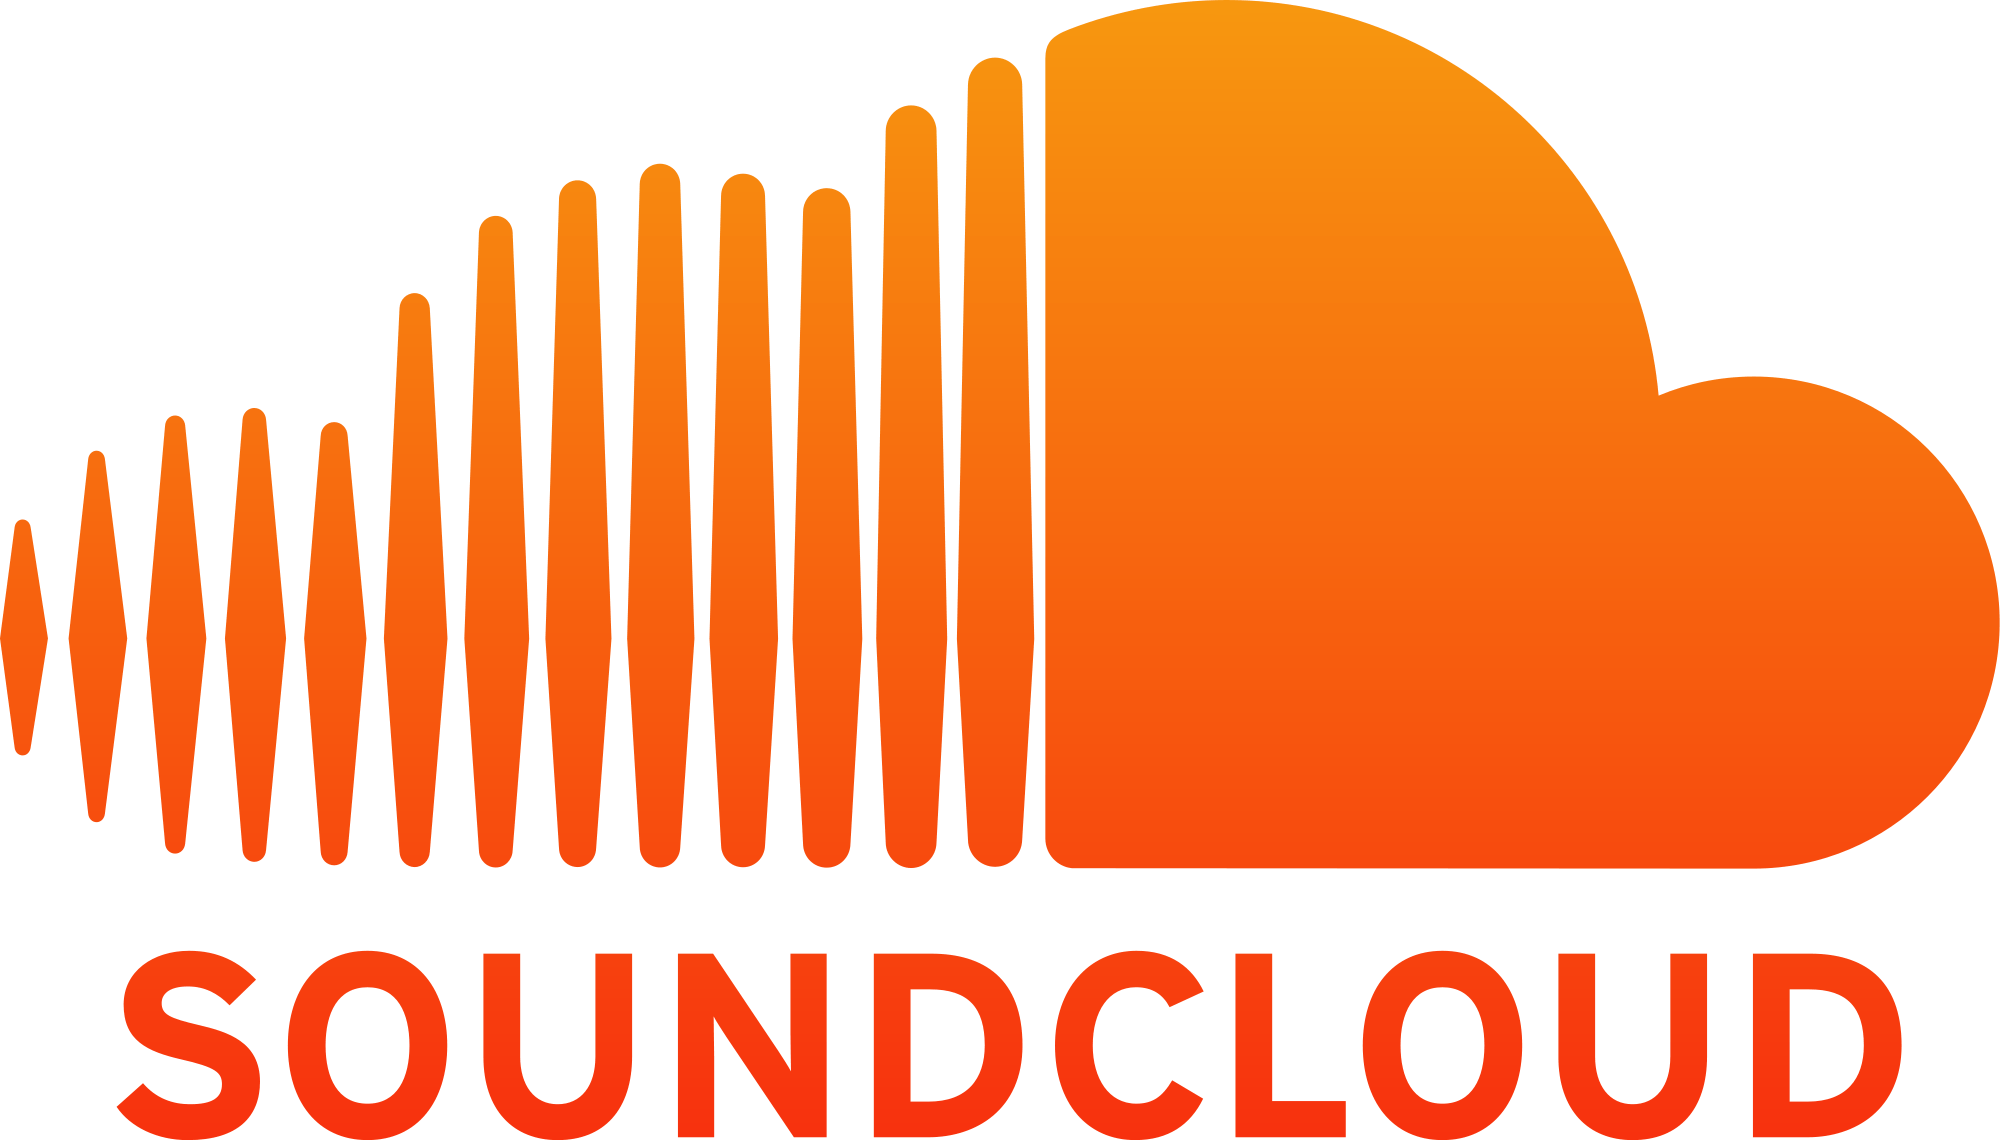 soundcloudIcon.png